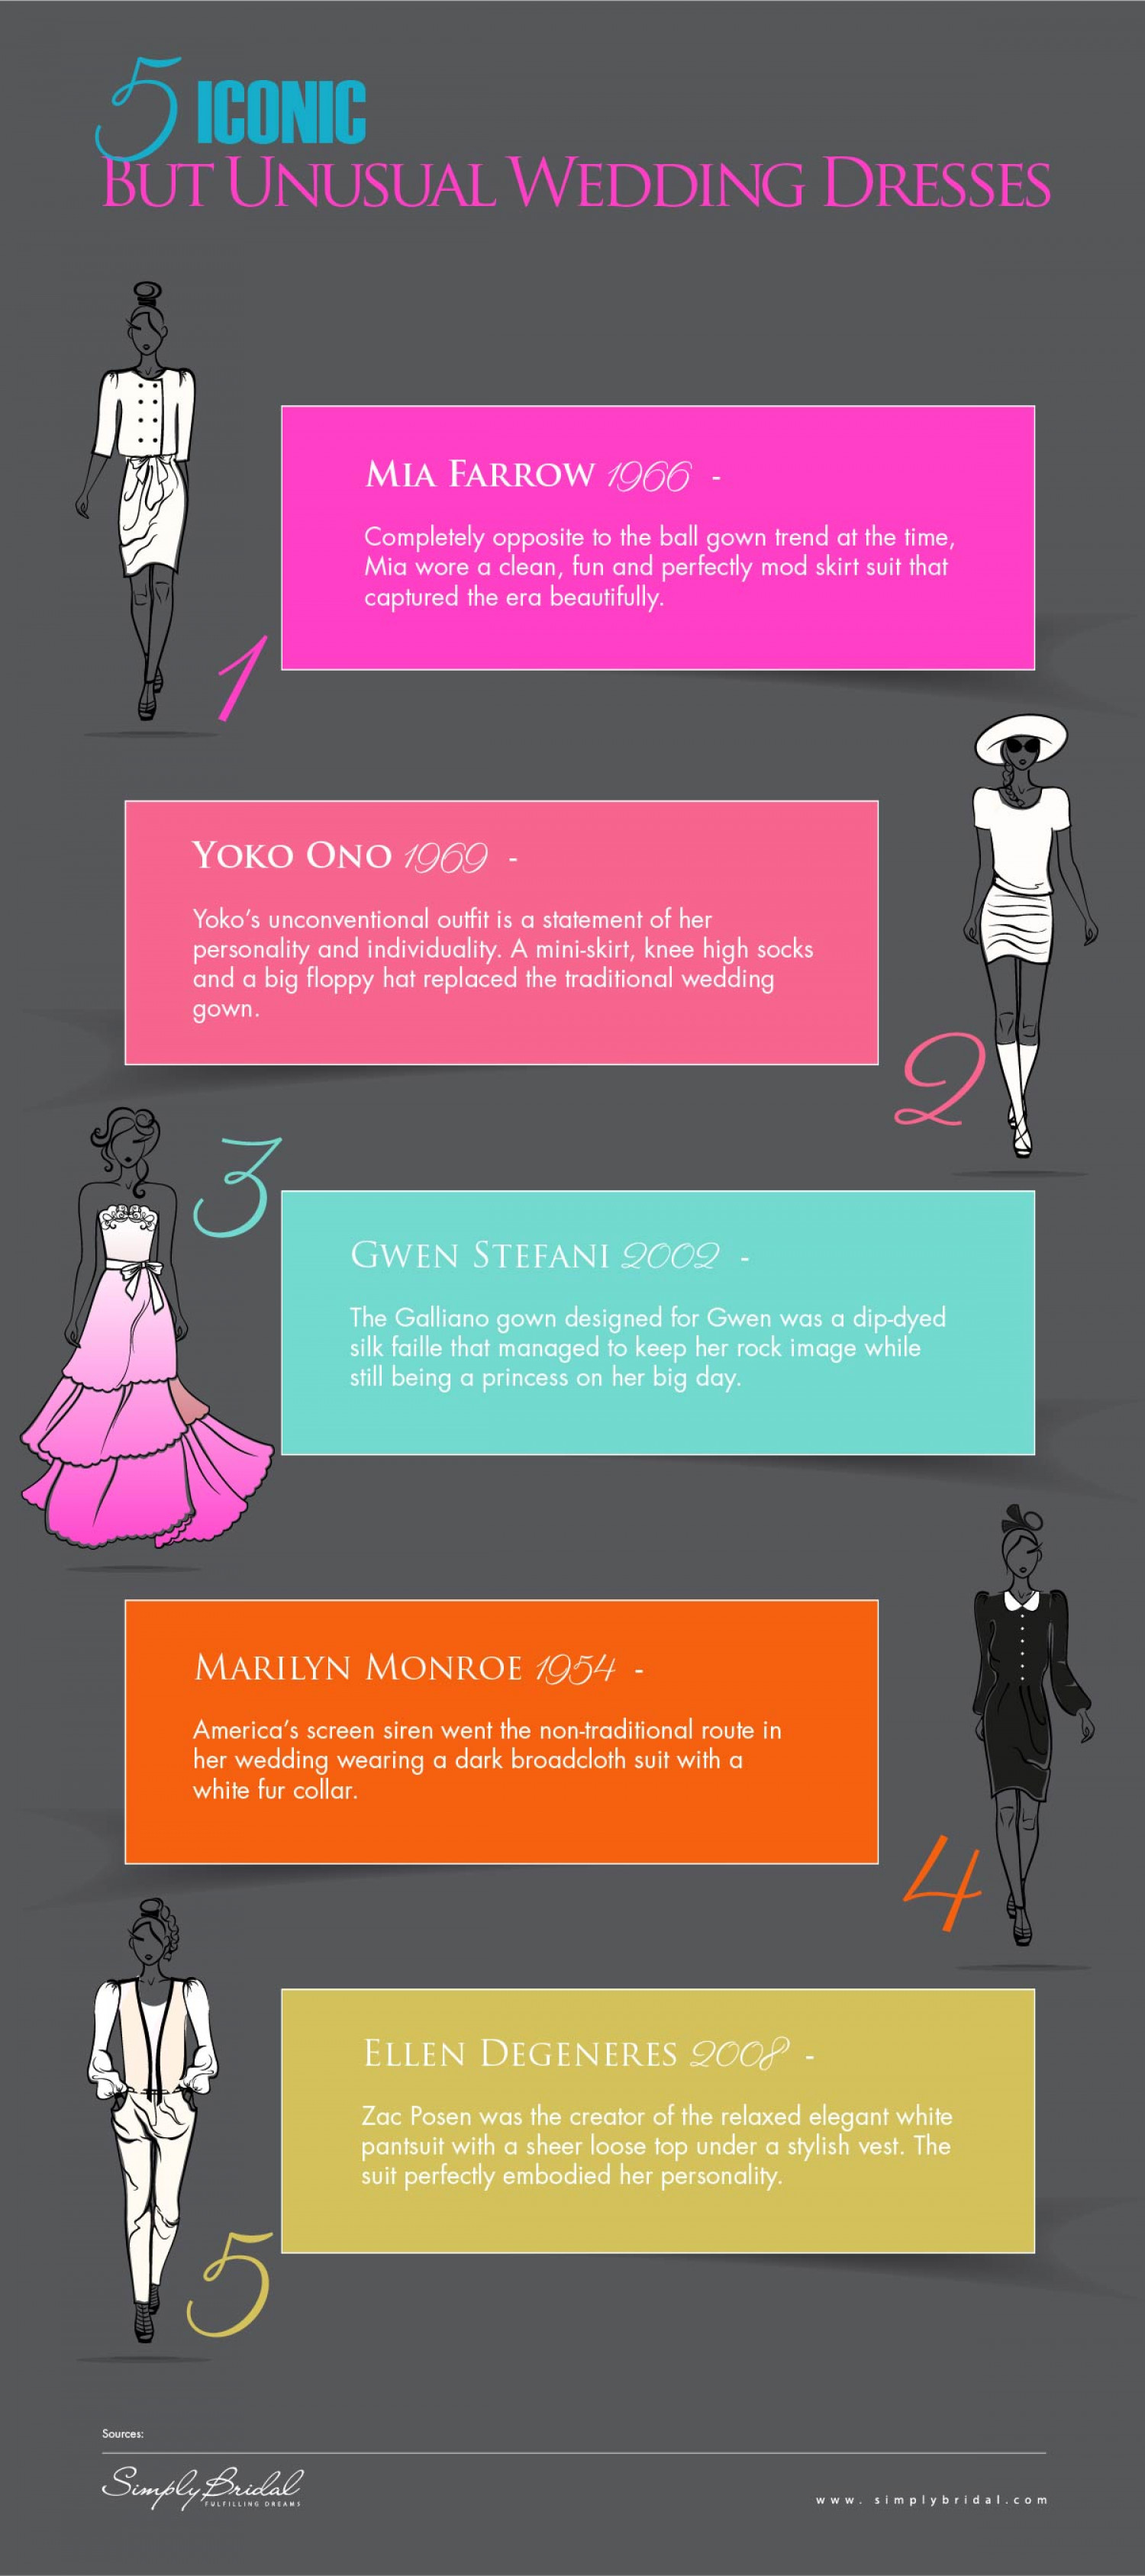 Iconic Wedding Dresses Infographic